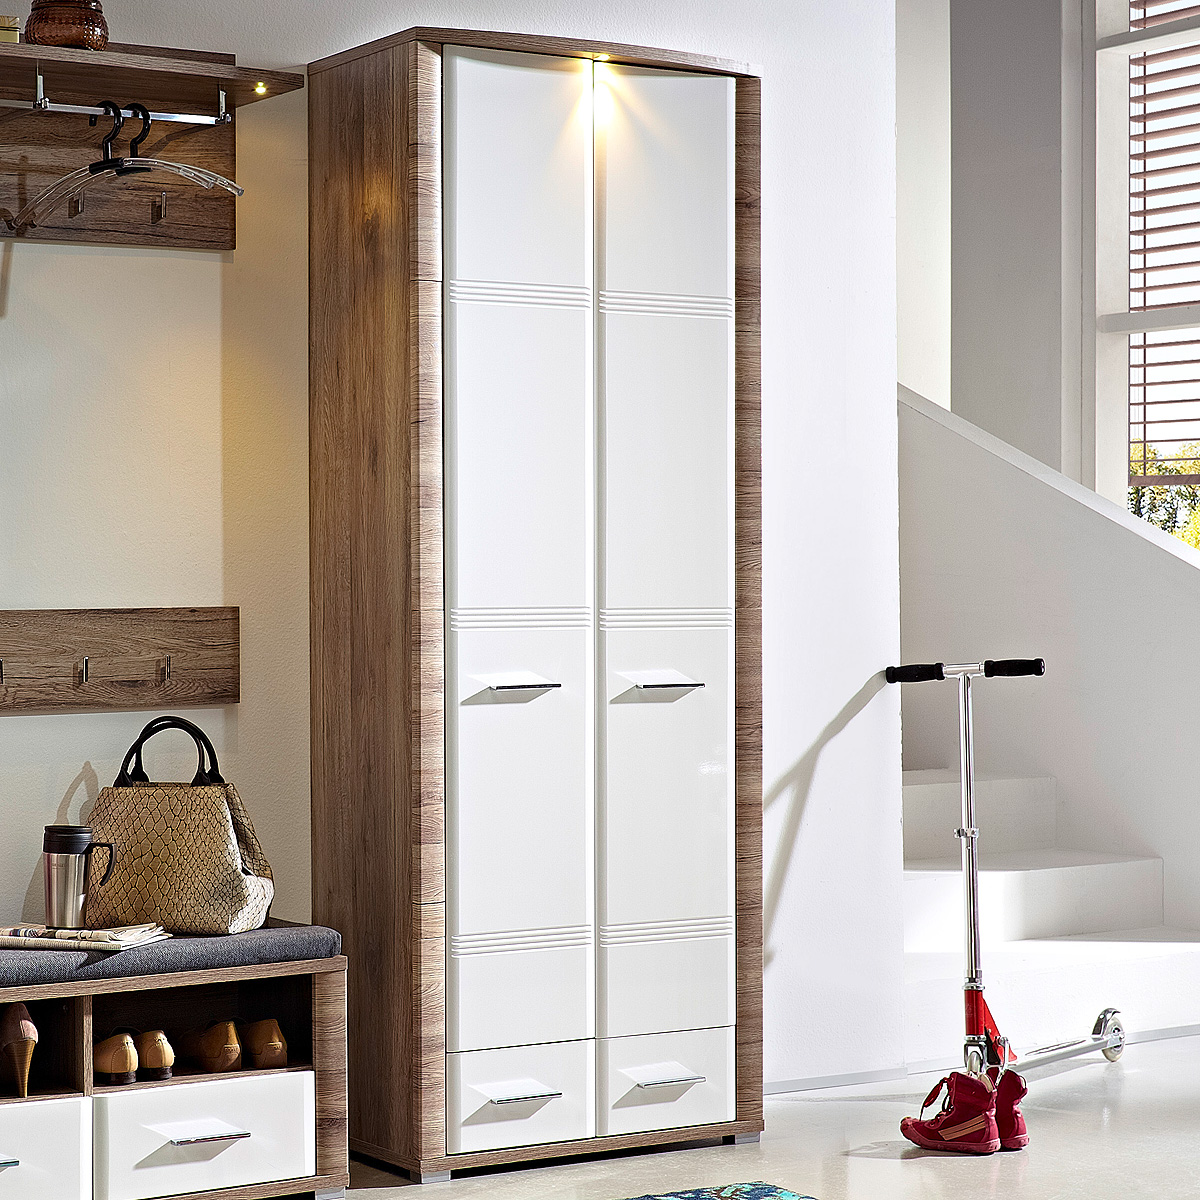 garderobenschrank flame garderobe in san remo eiche und wei hochglanz mit led ebay. Black Bedroom Furniture Sets. Home Design Ideas